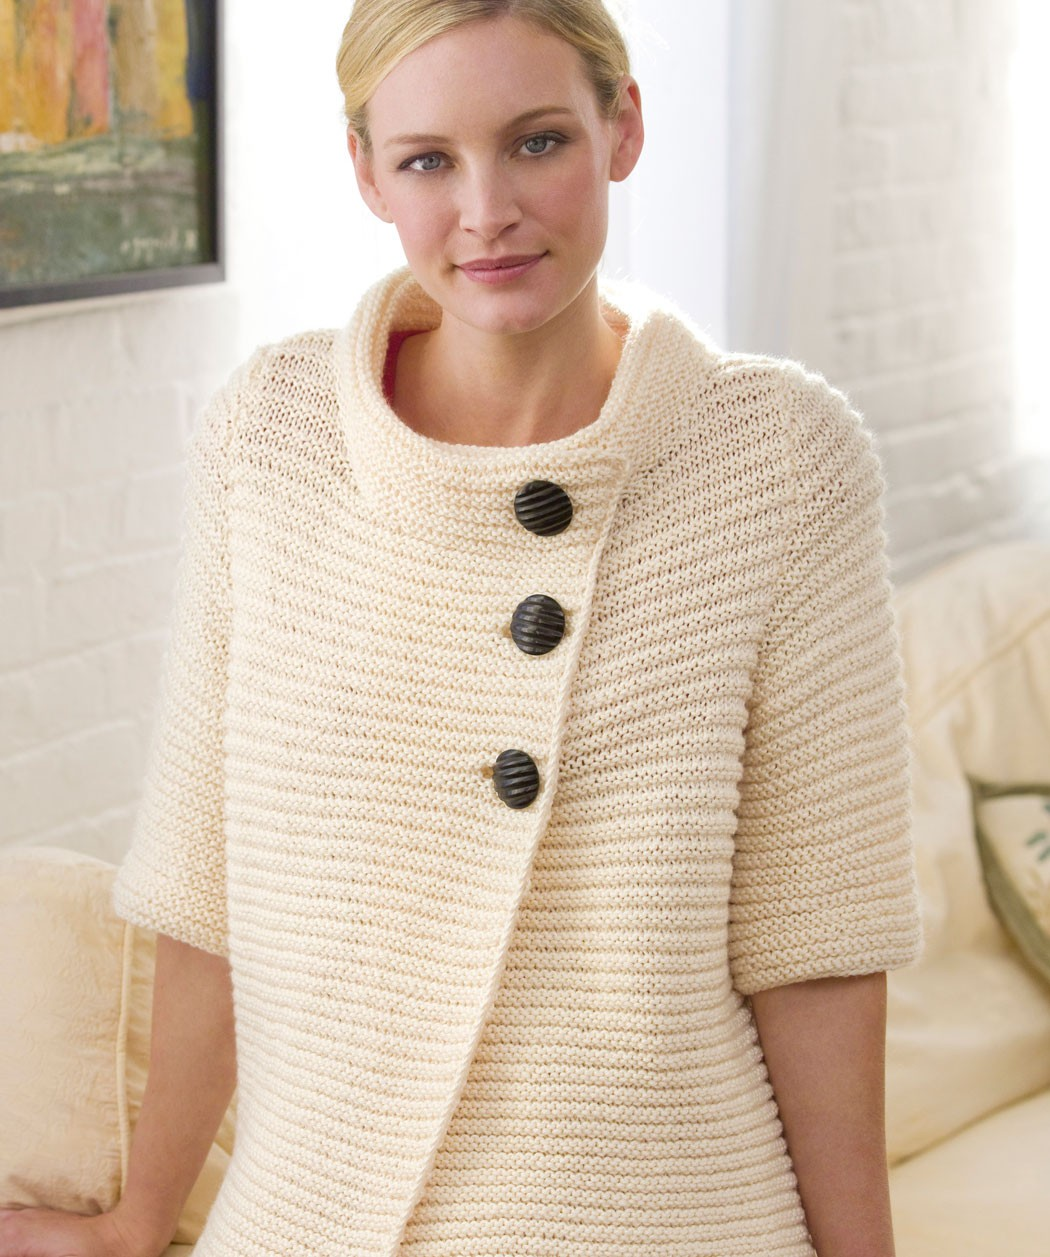 Knitting Sweater Patterns For Women : Knitted Sweater Patterns for Women A Knitting Blog